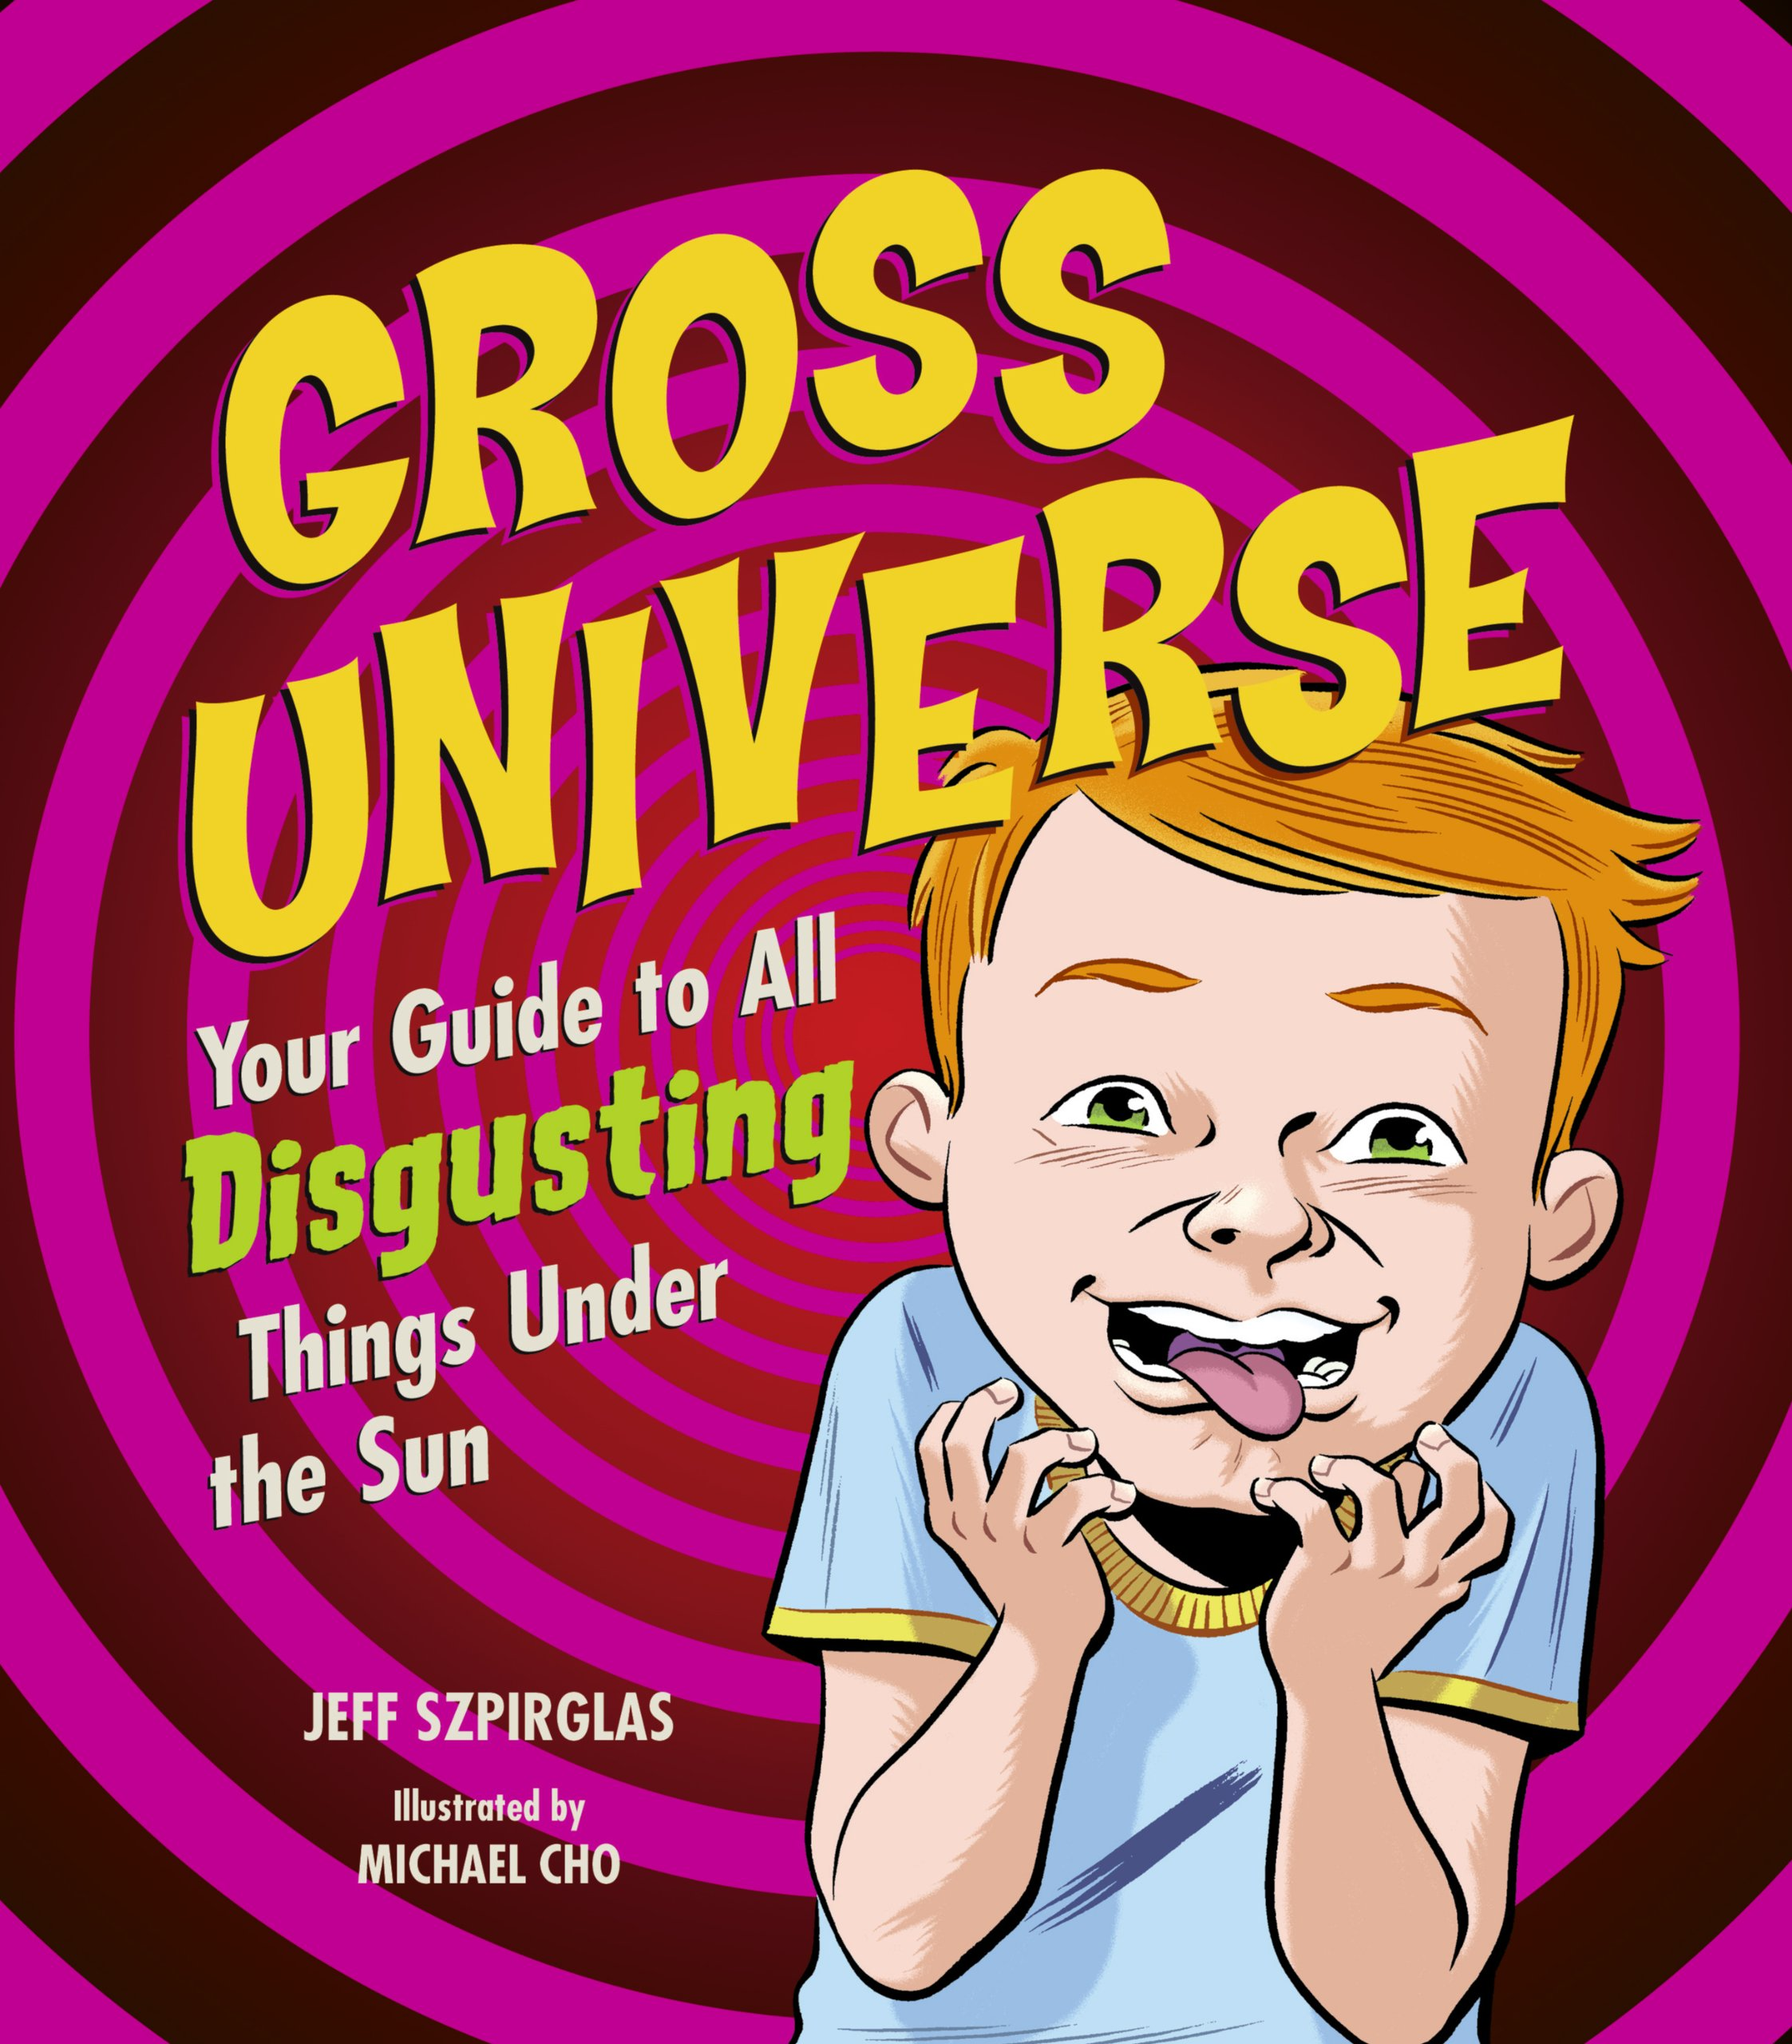 Gross Universe: Your Guide to All Disgusting Things Under the Sun